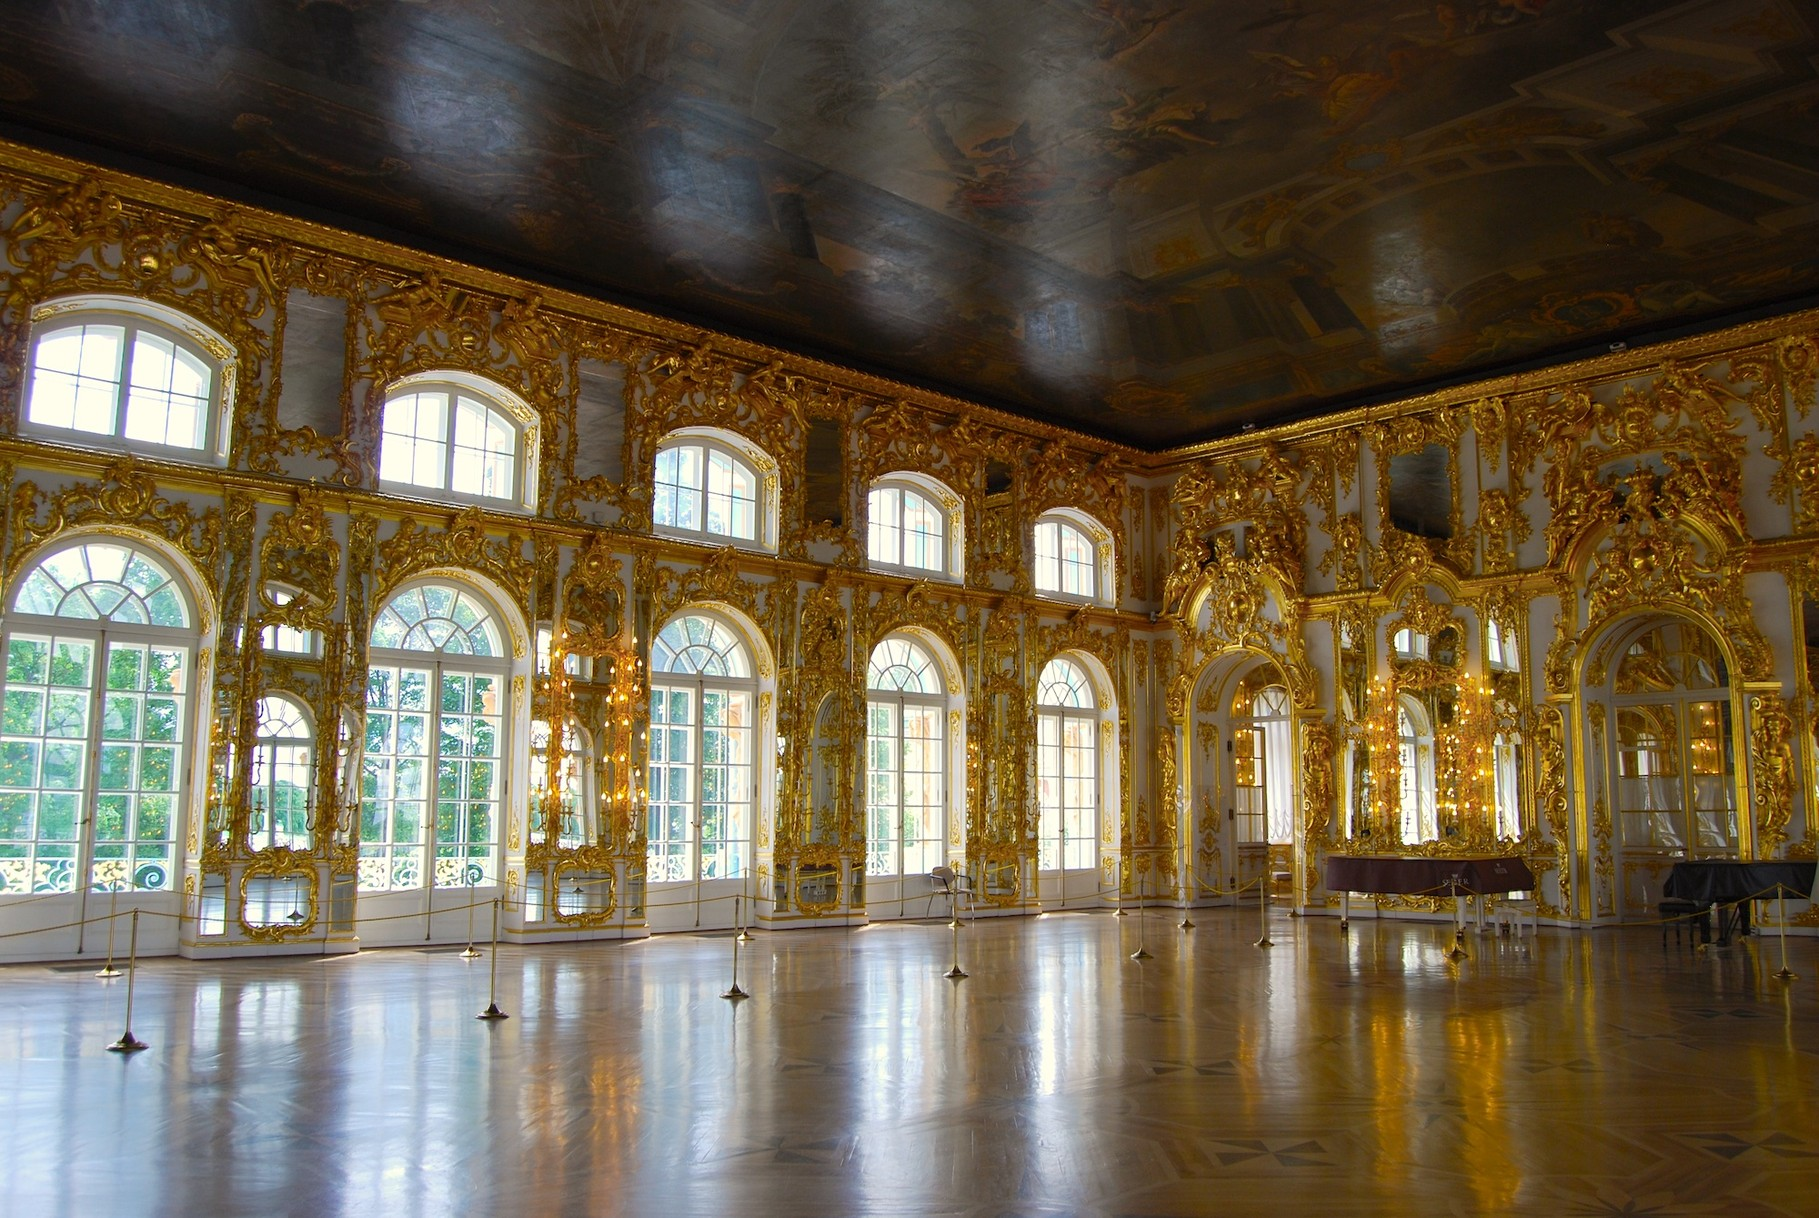 Saal im Ekaterinenpalast in Pushkin